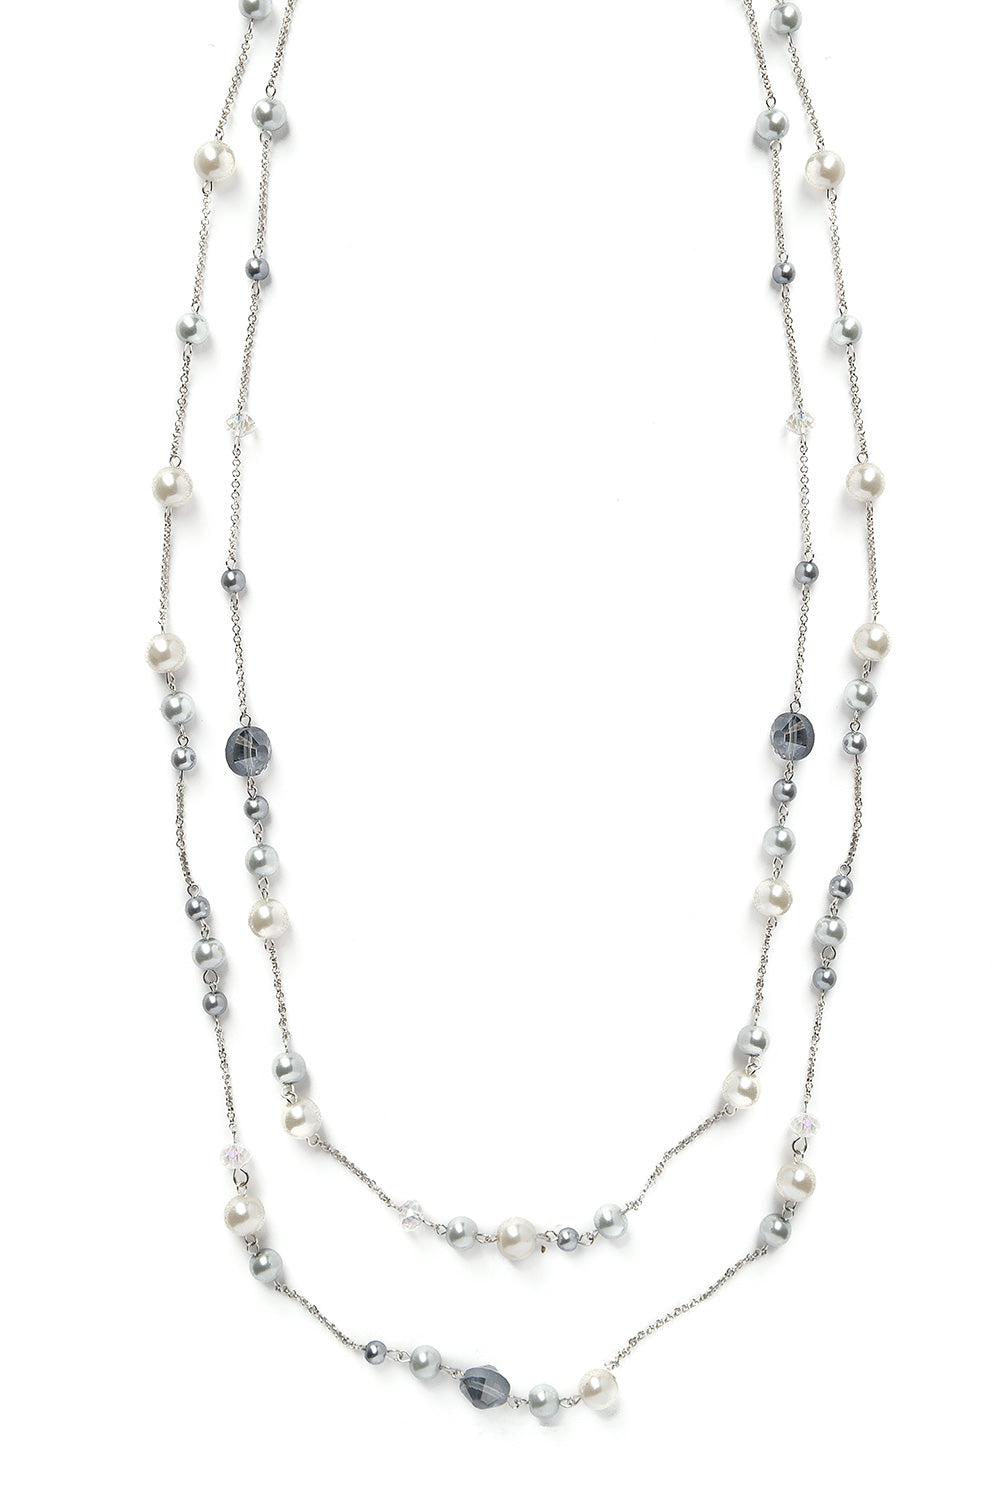 Type 2 Dripping with Pearls Necklace